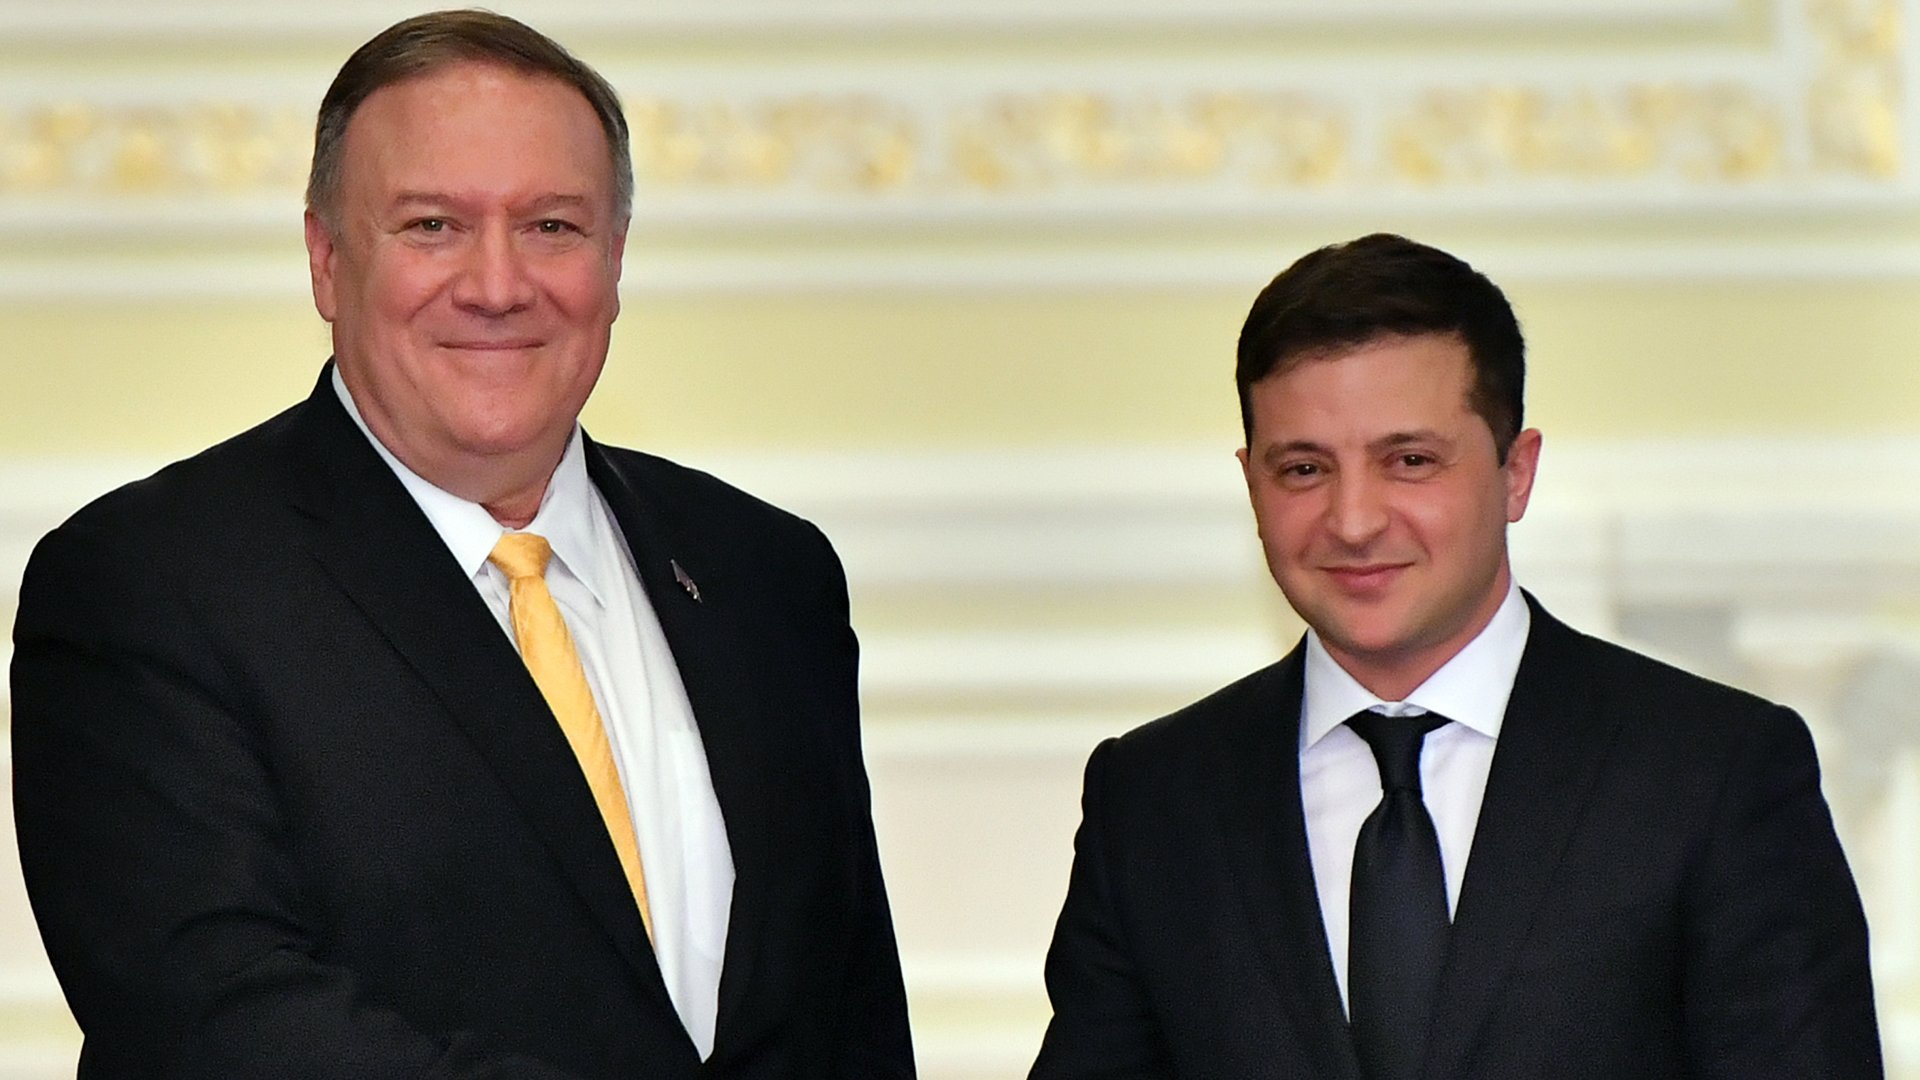 U.S. Secretary of State Mike Pompeo and Ukraine's President Volodymyr Zelensky shake hands as they address the media following their meeting in Kiev on Jan. 31, 2020. (Credit: Sergei SUPINSKY/ AFP via Getty Images)